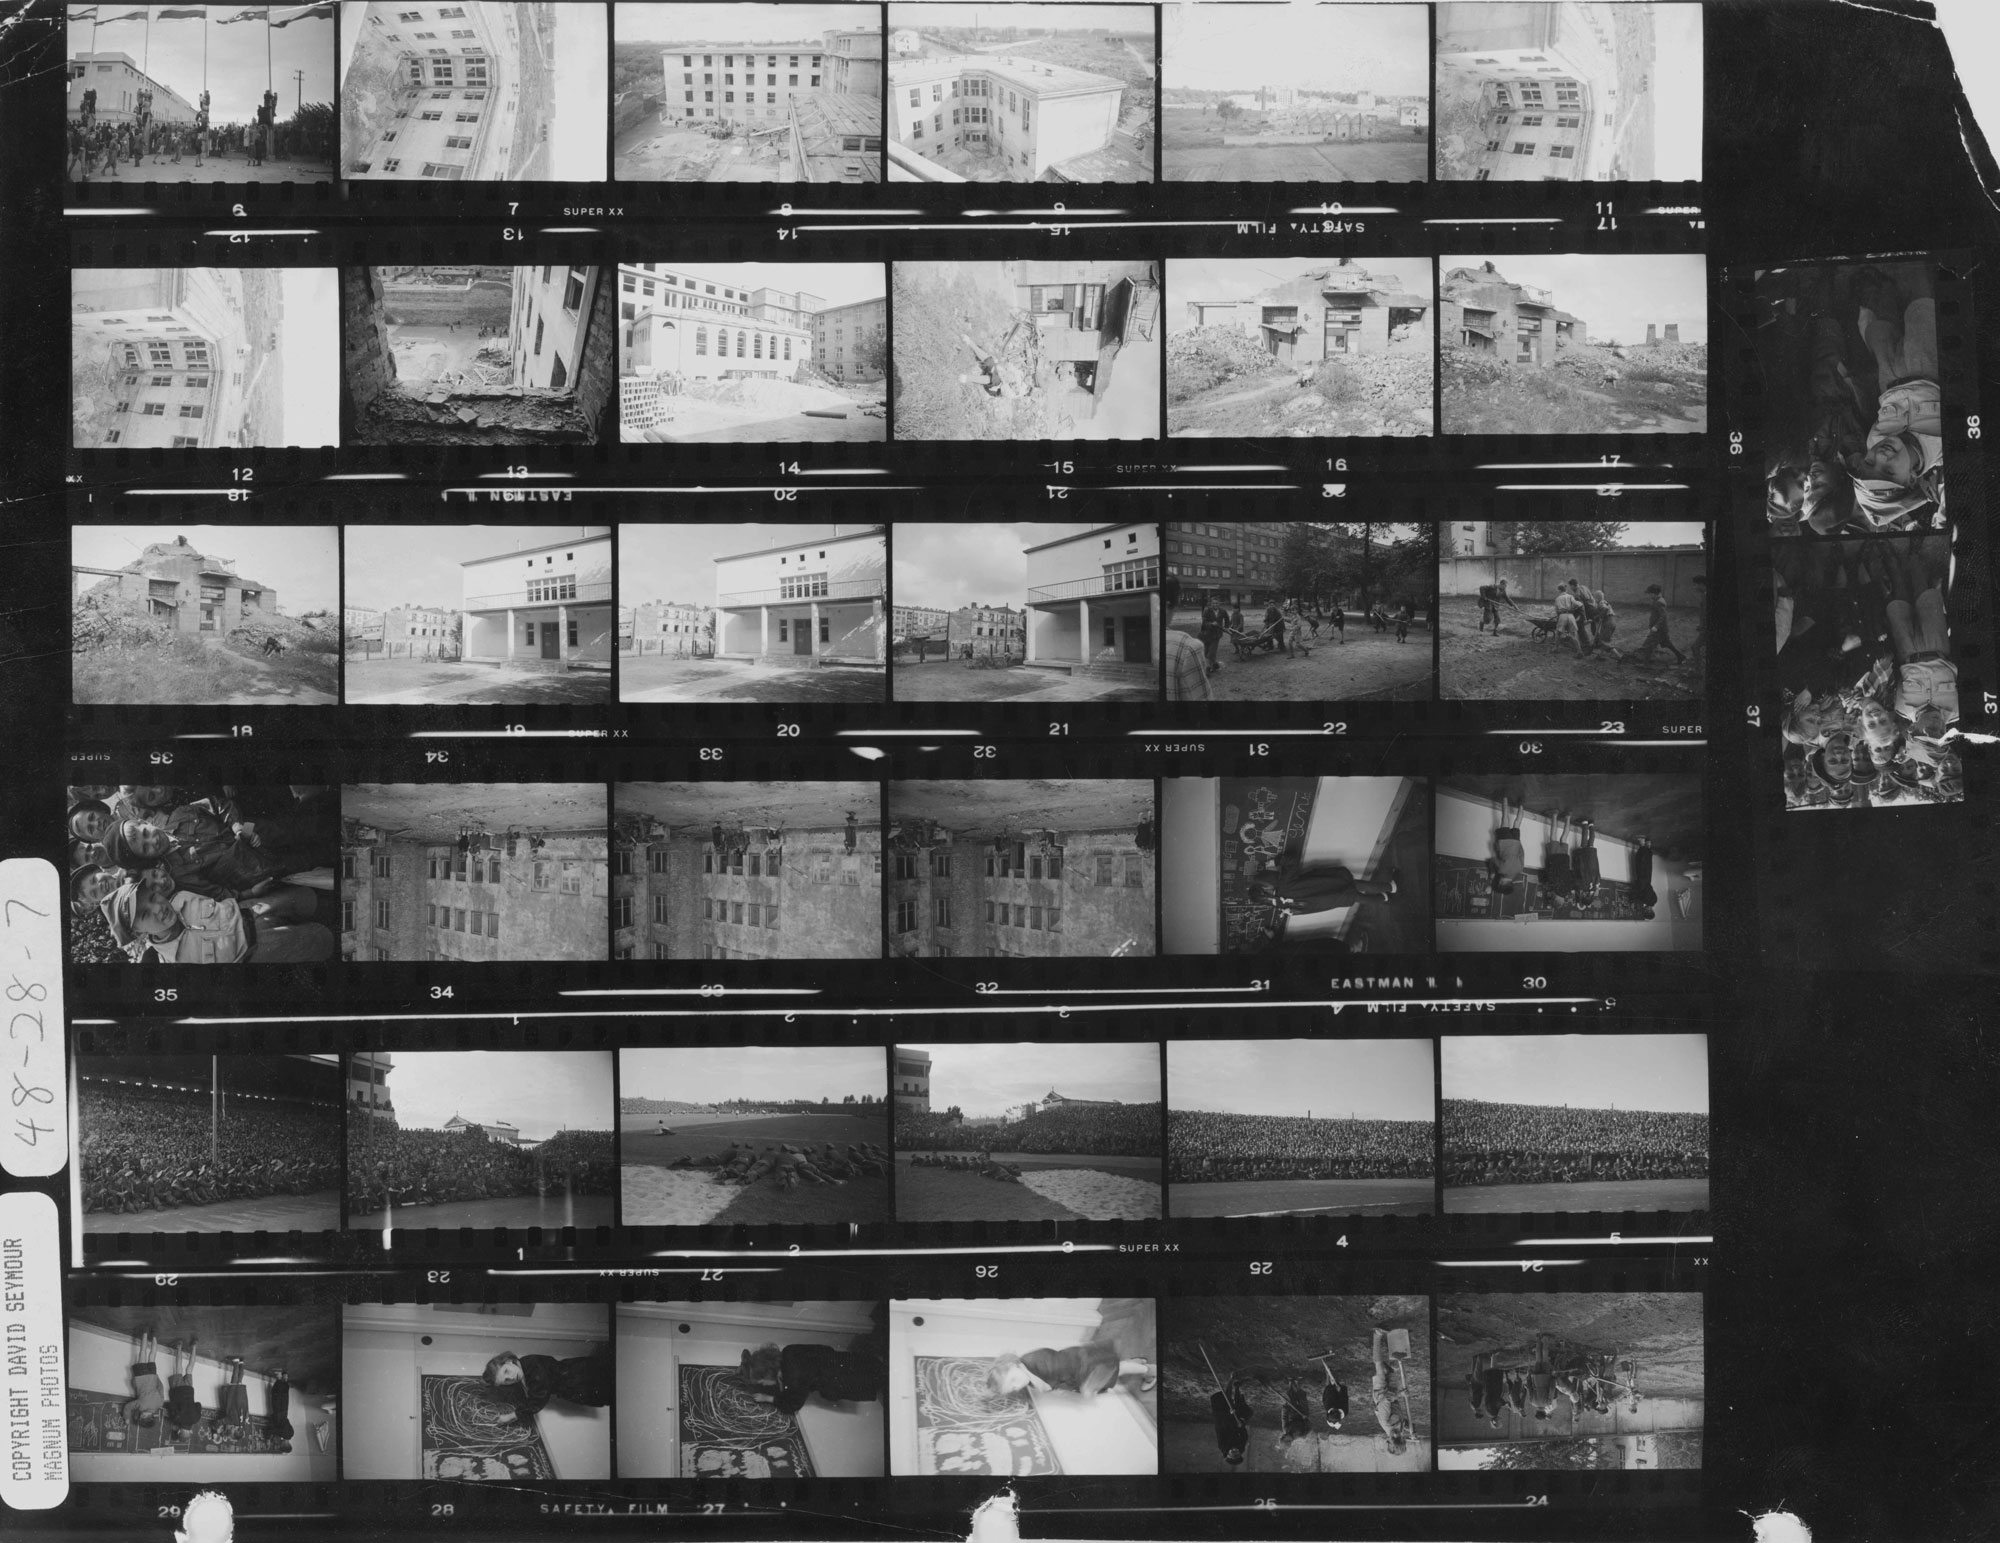 Contact sheet showing the school buildings in 1948.